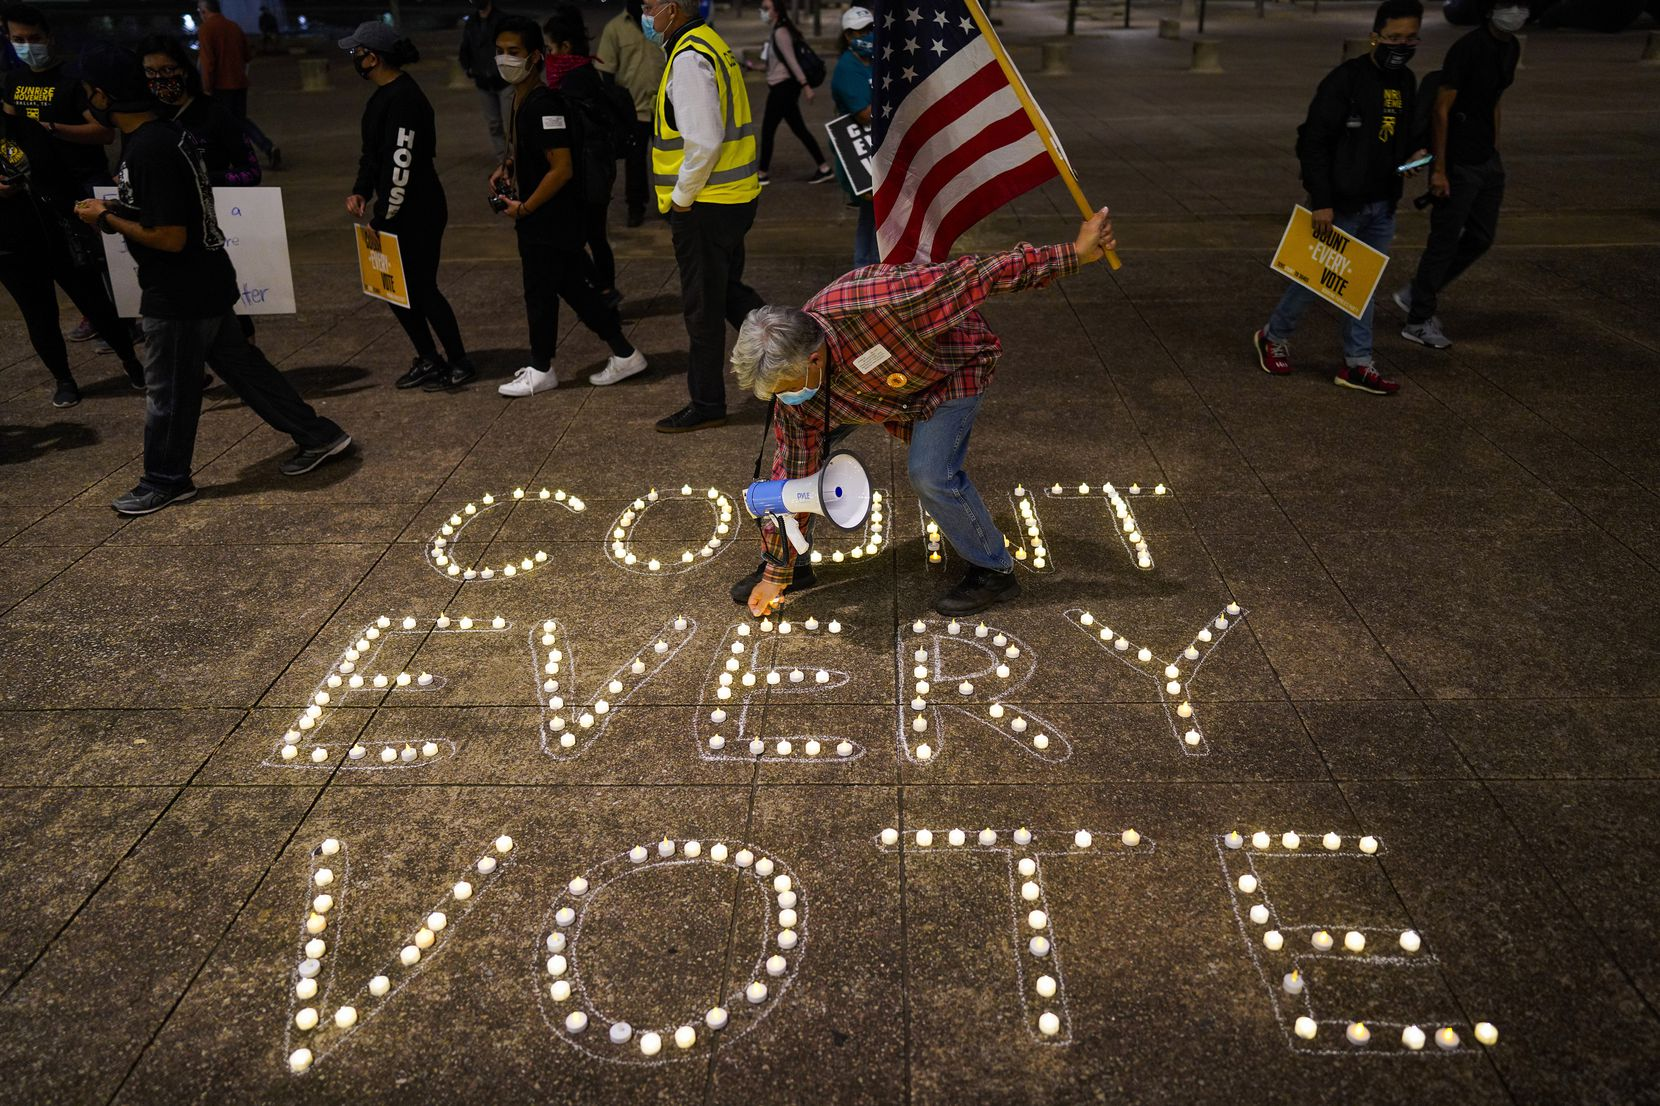 Benny De La Vega lighted candles to highlight the prevailing sentiment during a rally at Dallas City Hall on Nov. 4, the day after the election. Participants represented several organizations, and speakers addressed the crowd of about 100 in English and Spanish.